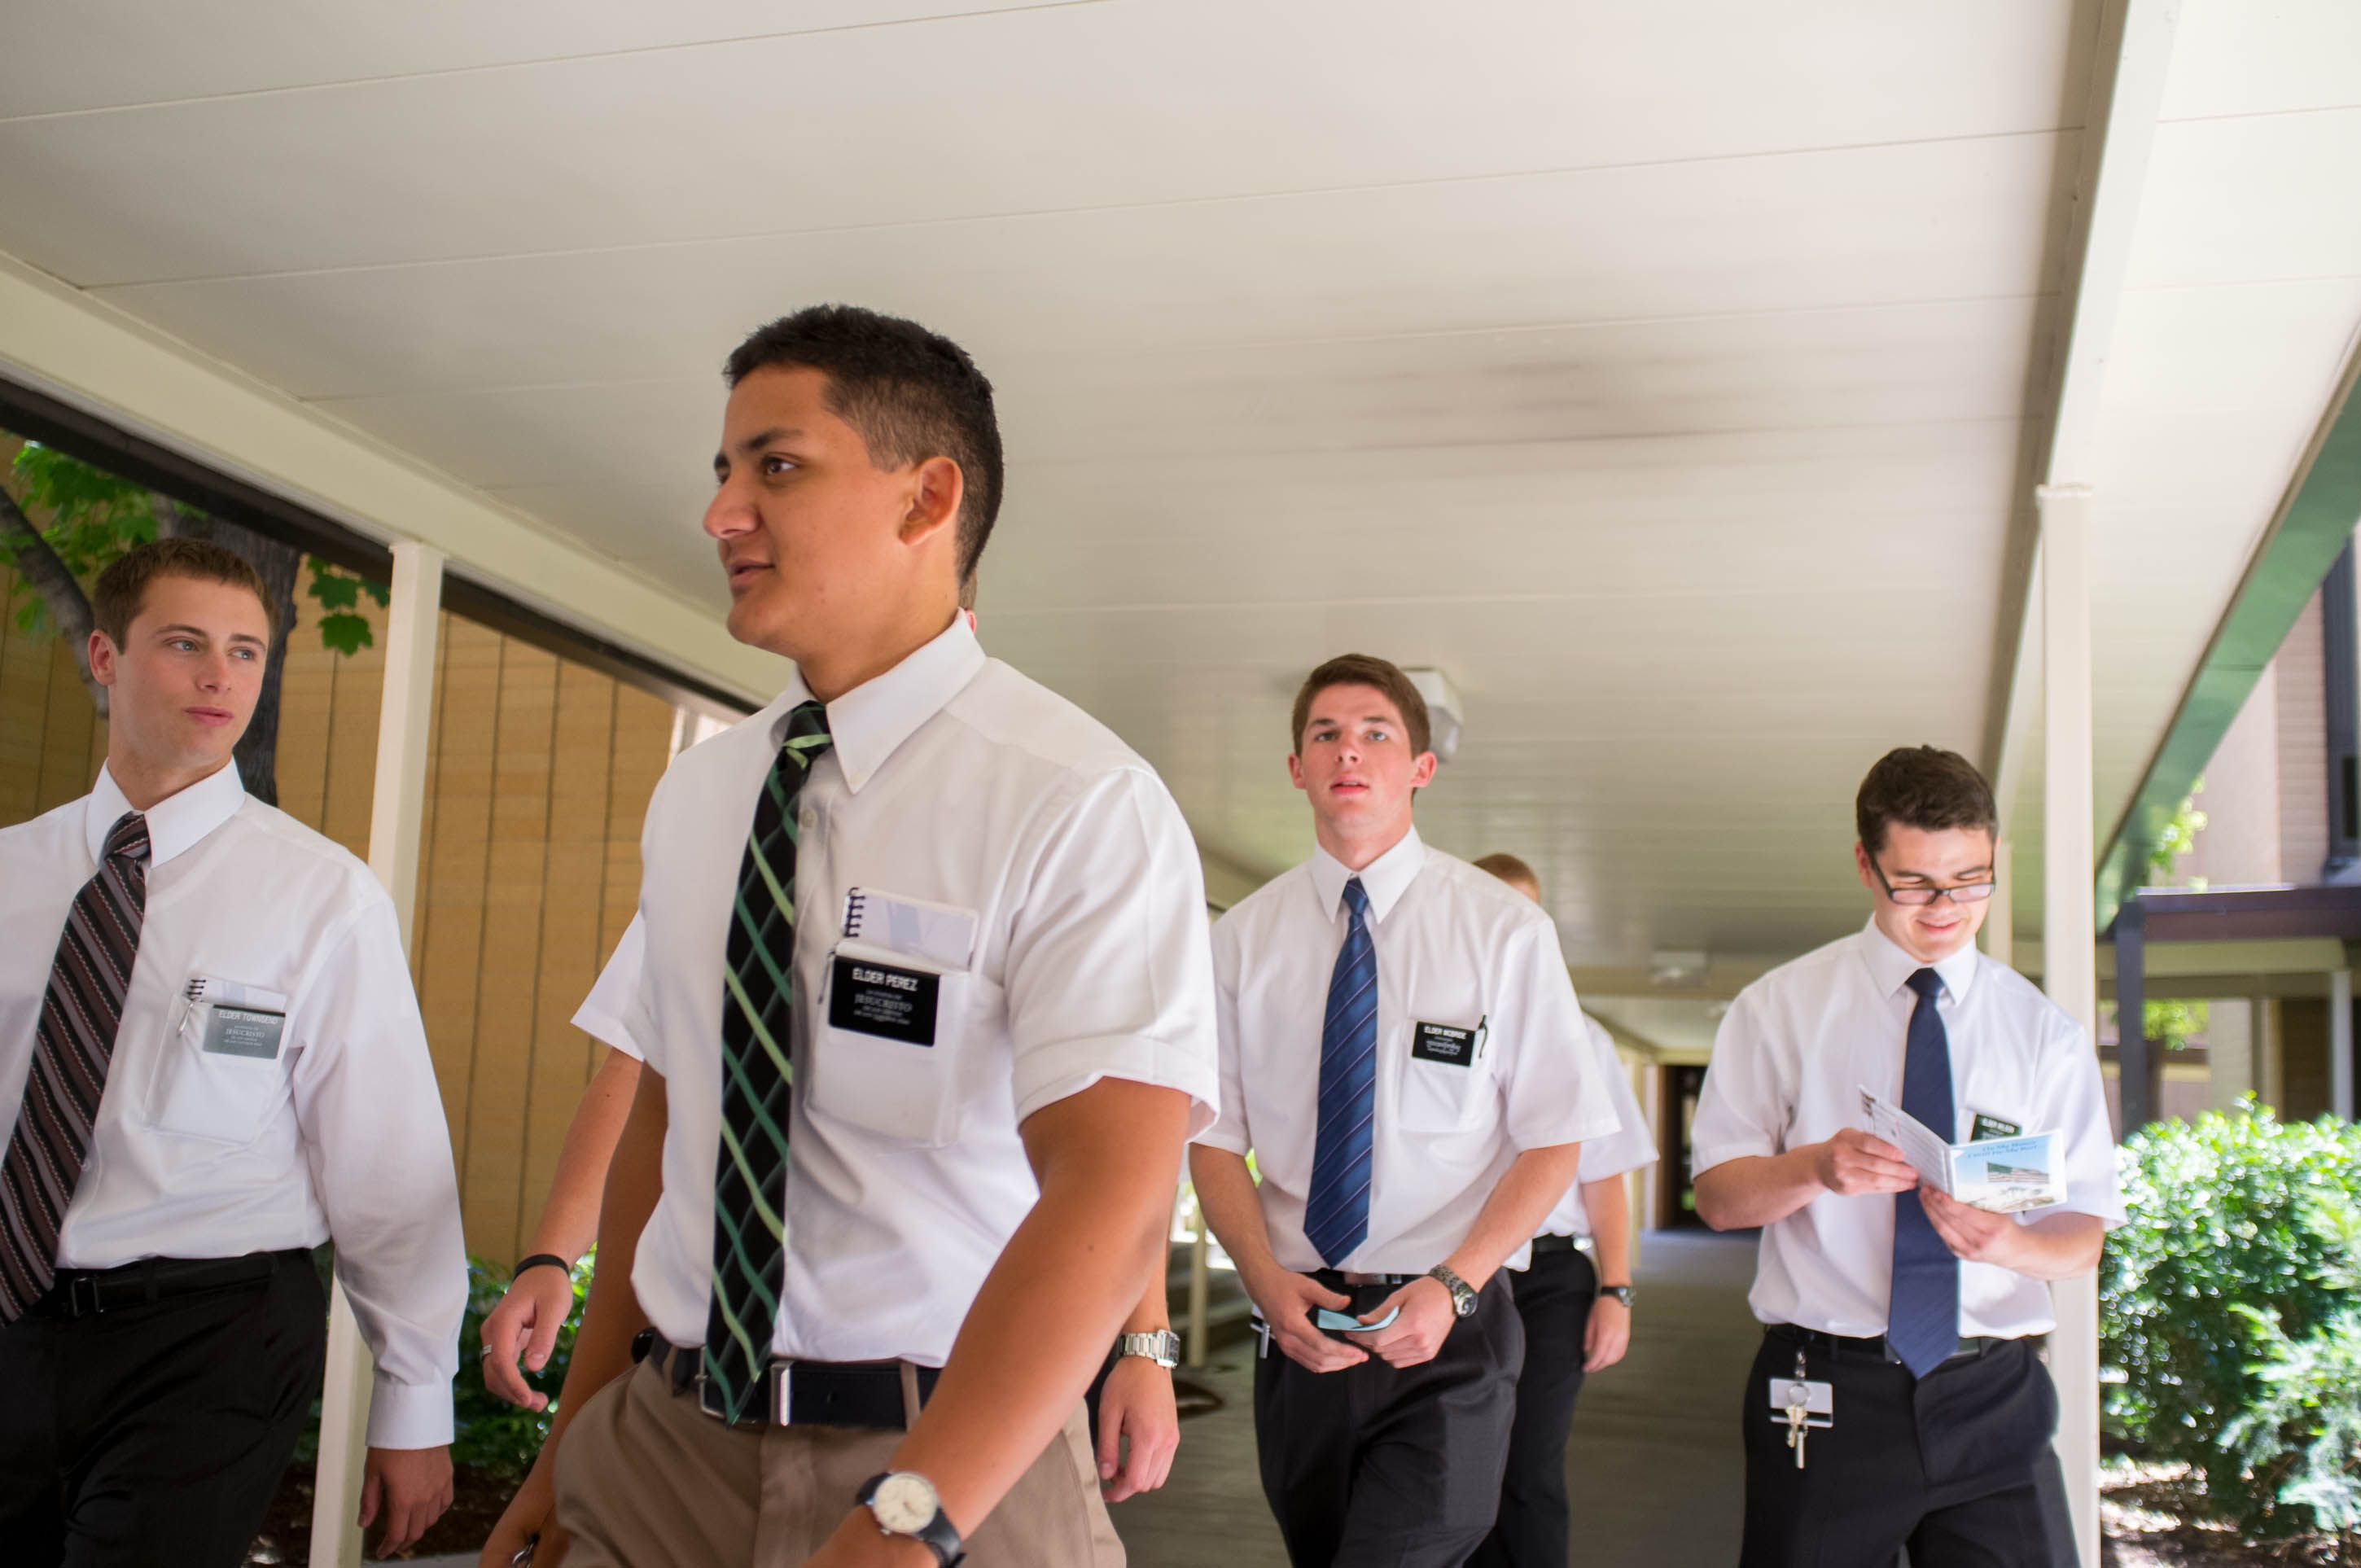 (Trent Nelson | Tribune file photo) Missionaries at the Missionary Training Center of The Church of Jesus Christ of Latter-day Saints in Provo on June 18, 2013.